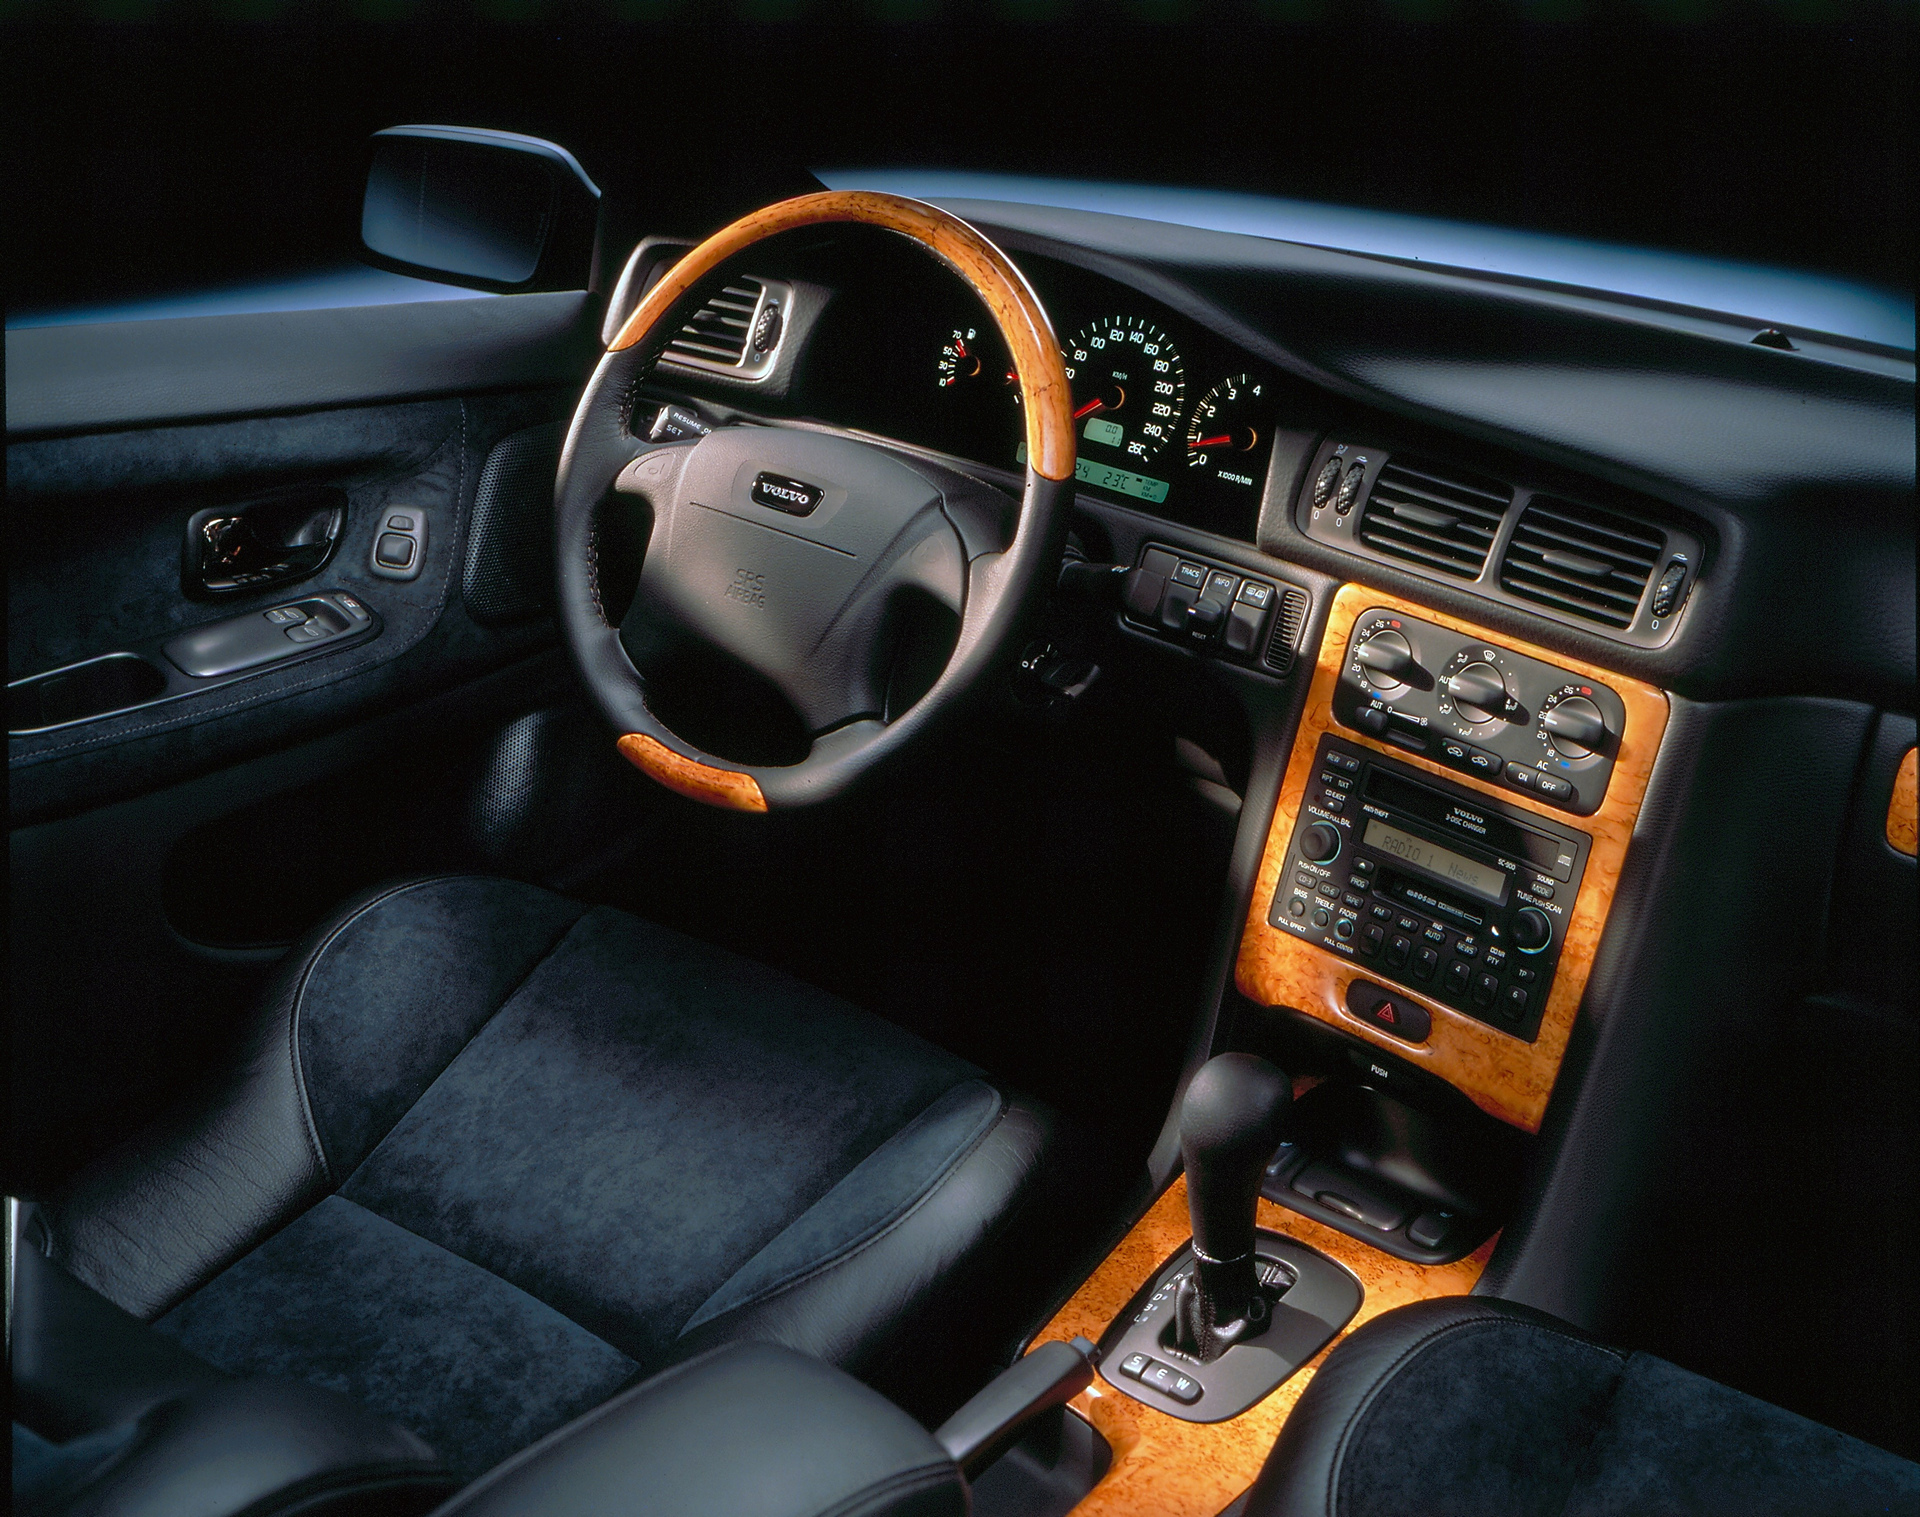 Volvo C70 Coupé interior © Zhejiang Geely Holding Group Co., Ltd